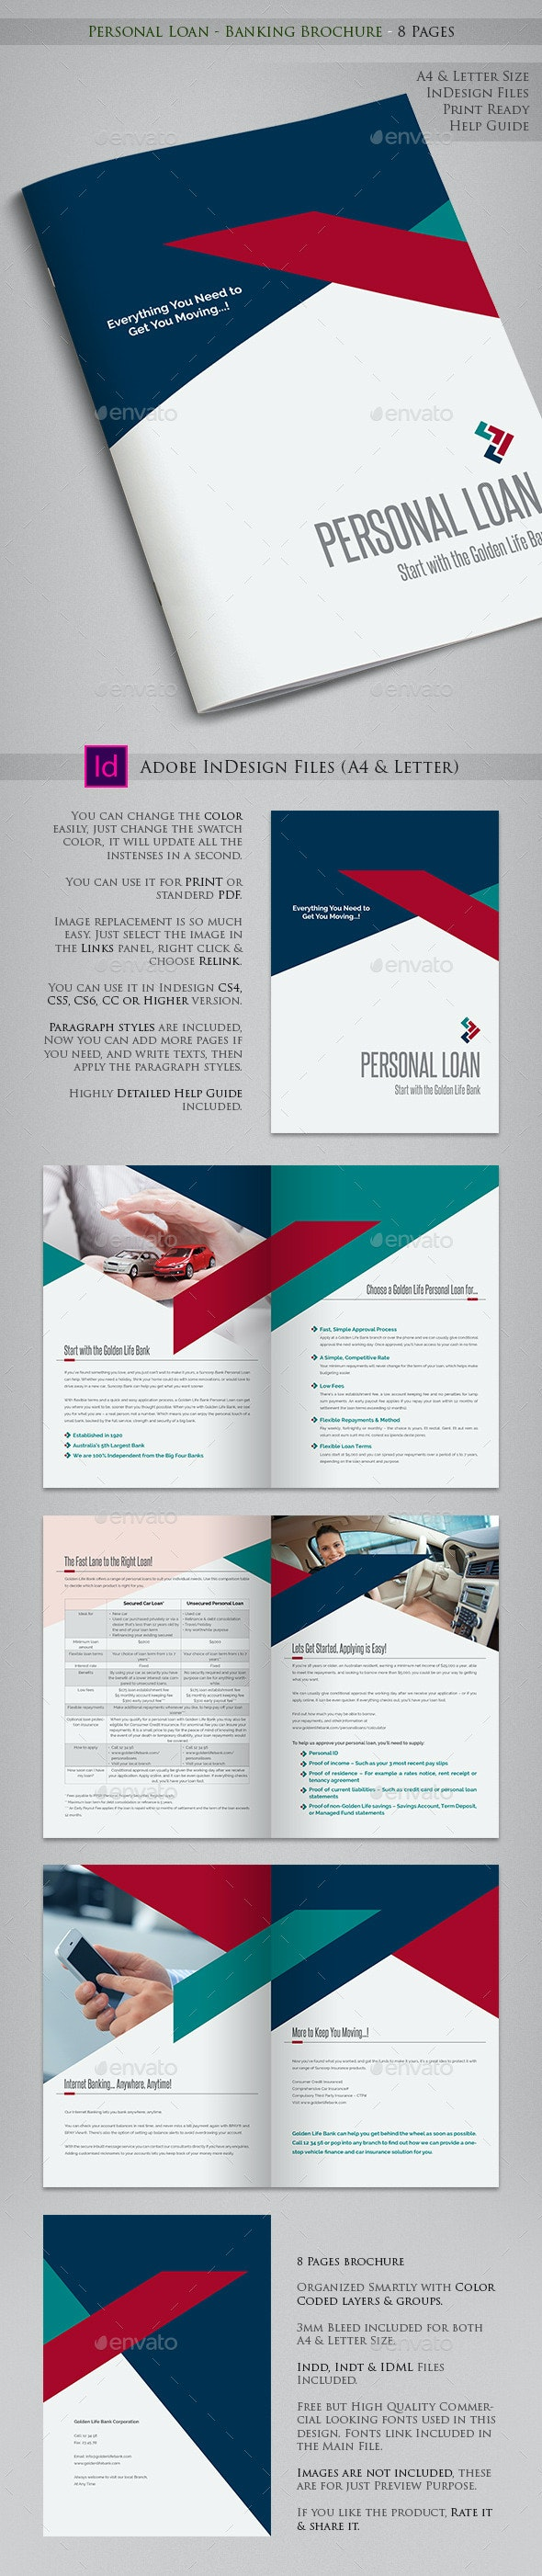 Personal Loan - Banking Brochure - 8 Pages - Informational Brochures